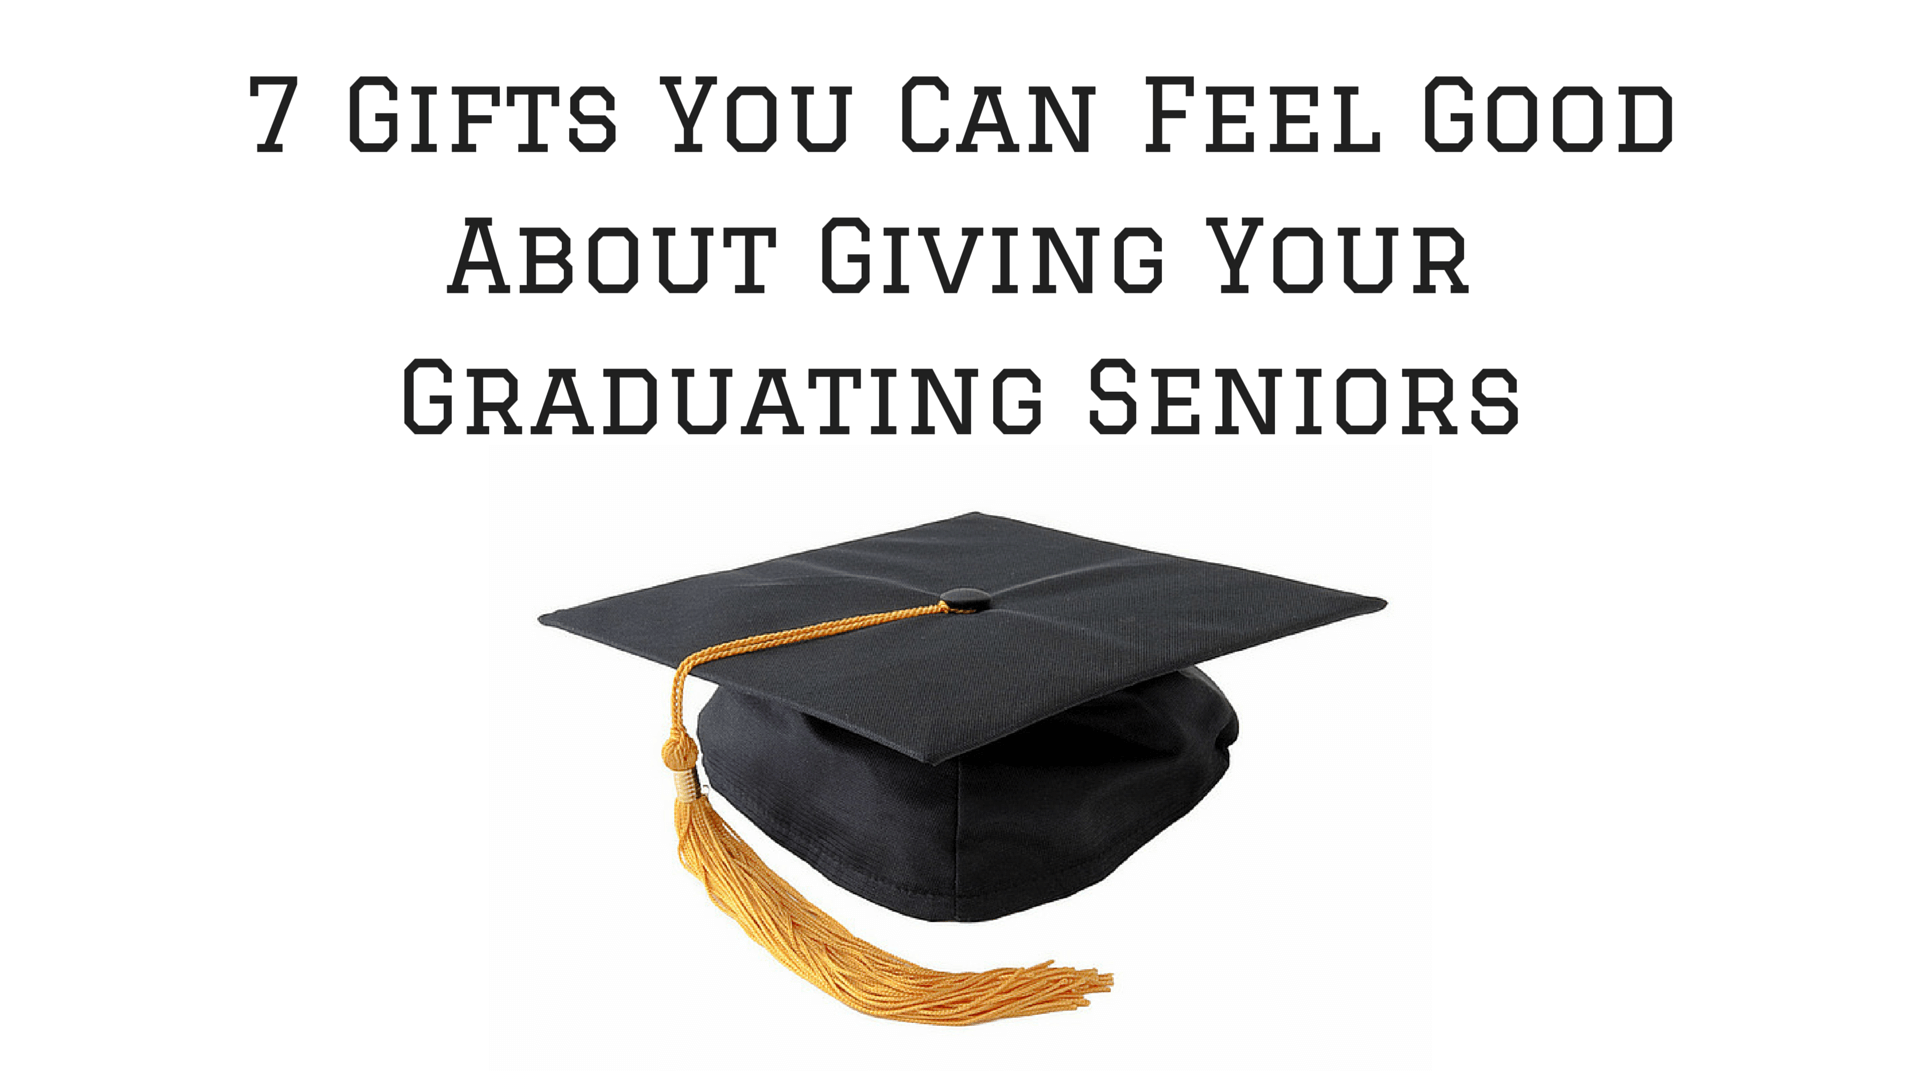 Gifts for Graduating Seniors at Your Church